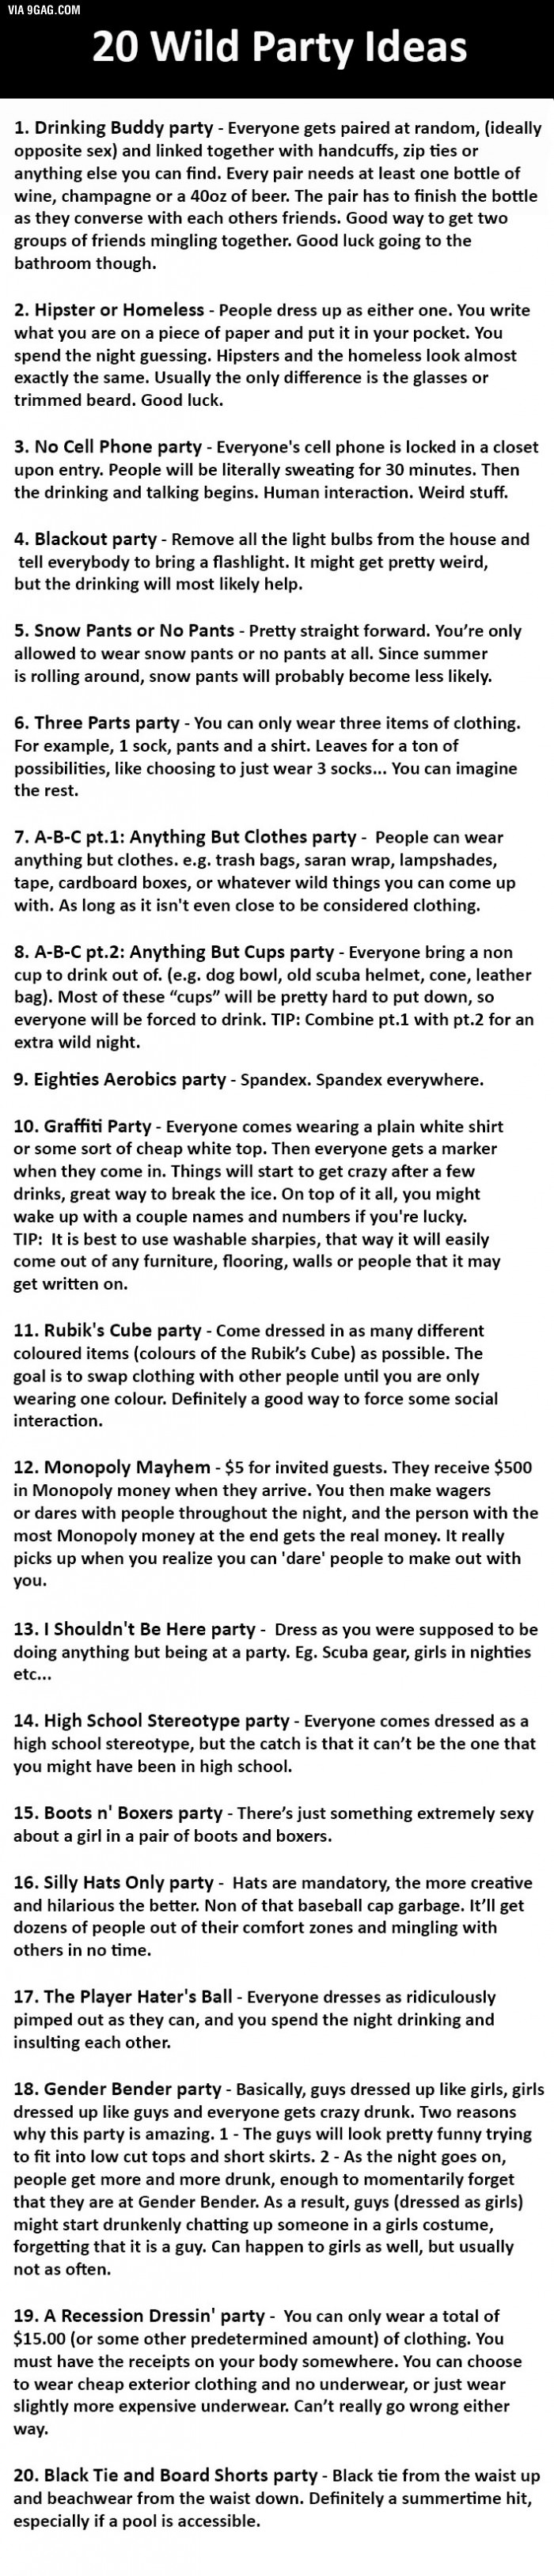 20 best ideas for a wild party